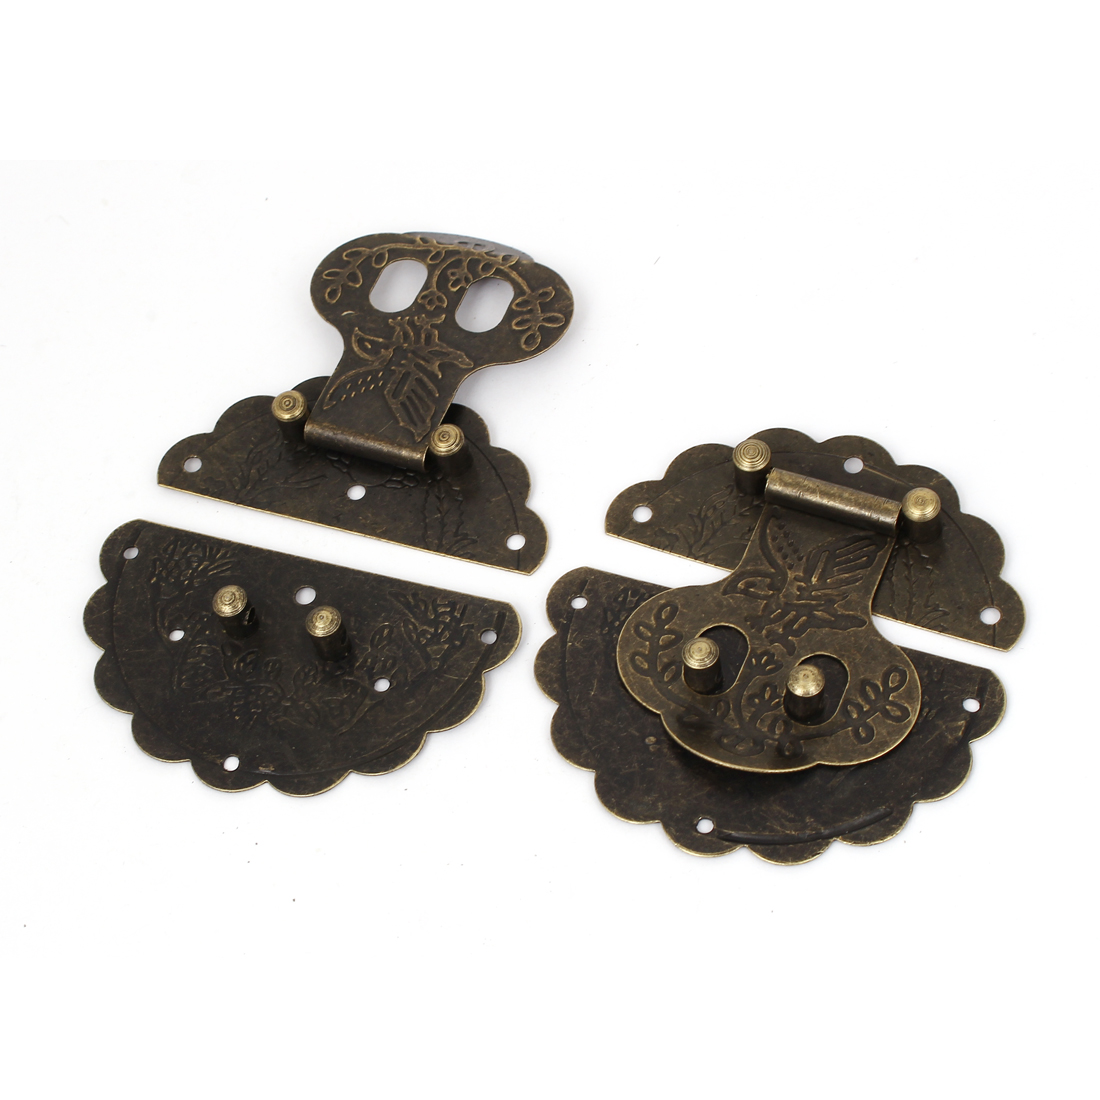 Wooden Case Chest Box Antique Style Round Clasp Hasp Latches Bronze Tone 78mm Dia 2pcs